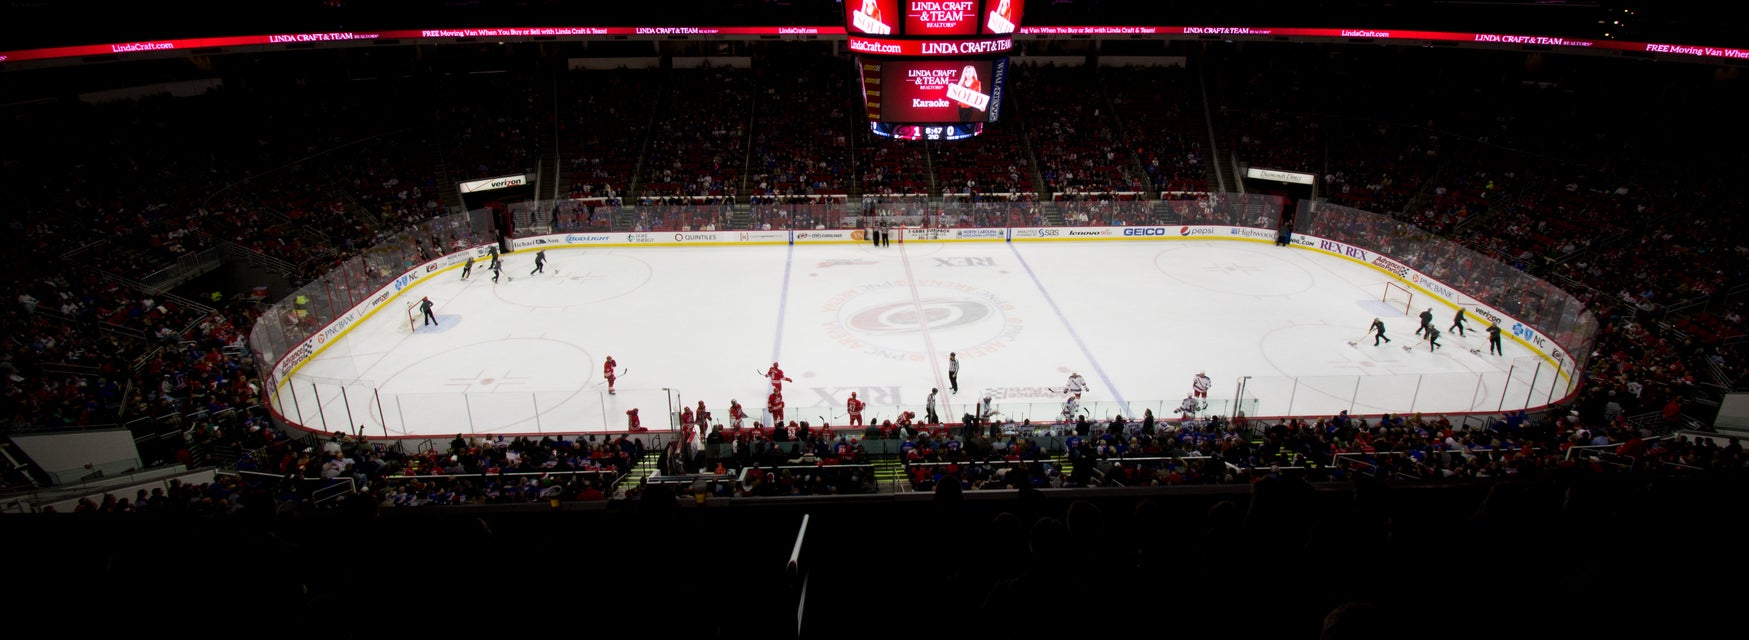 Seat view from Center Ice Club